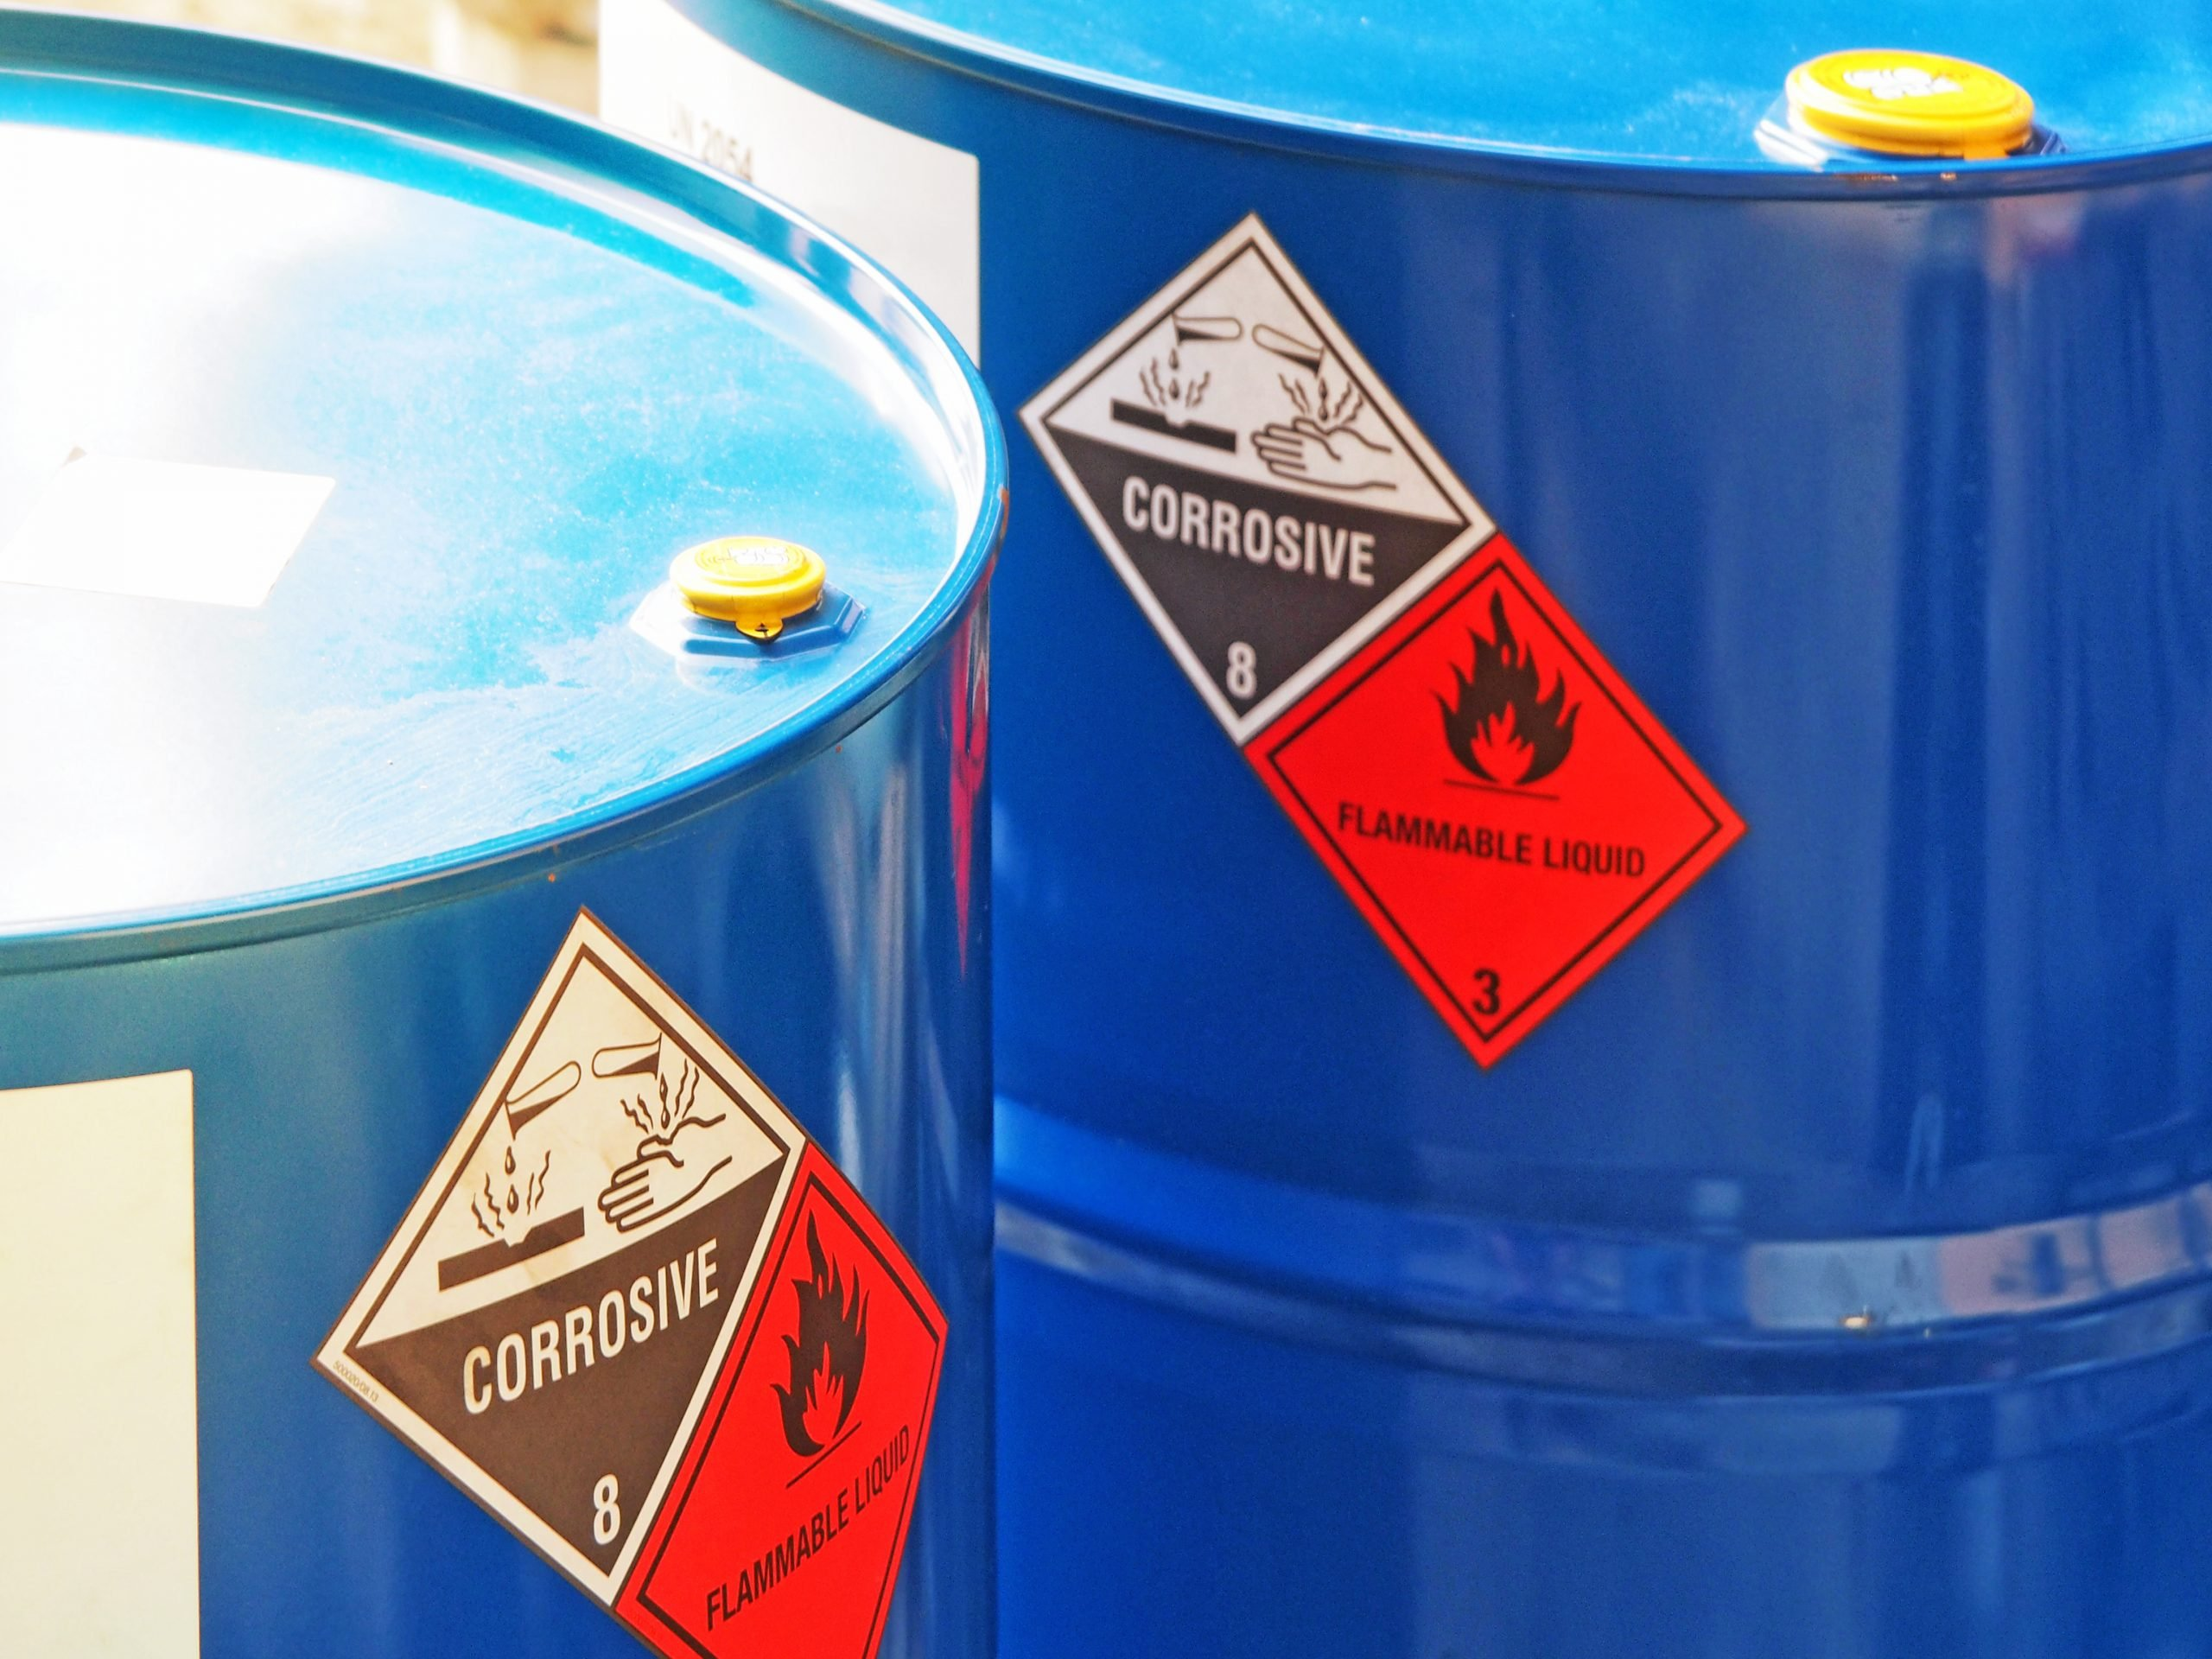 hazardous dangerous chemical barrels ,have warning labels of corrosive & flammable liquid